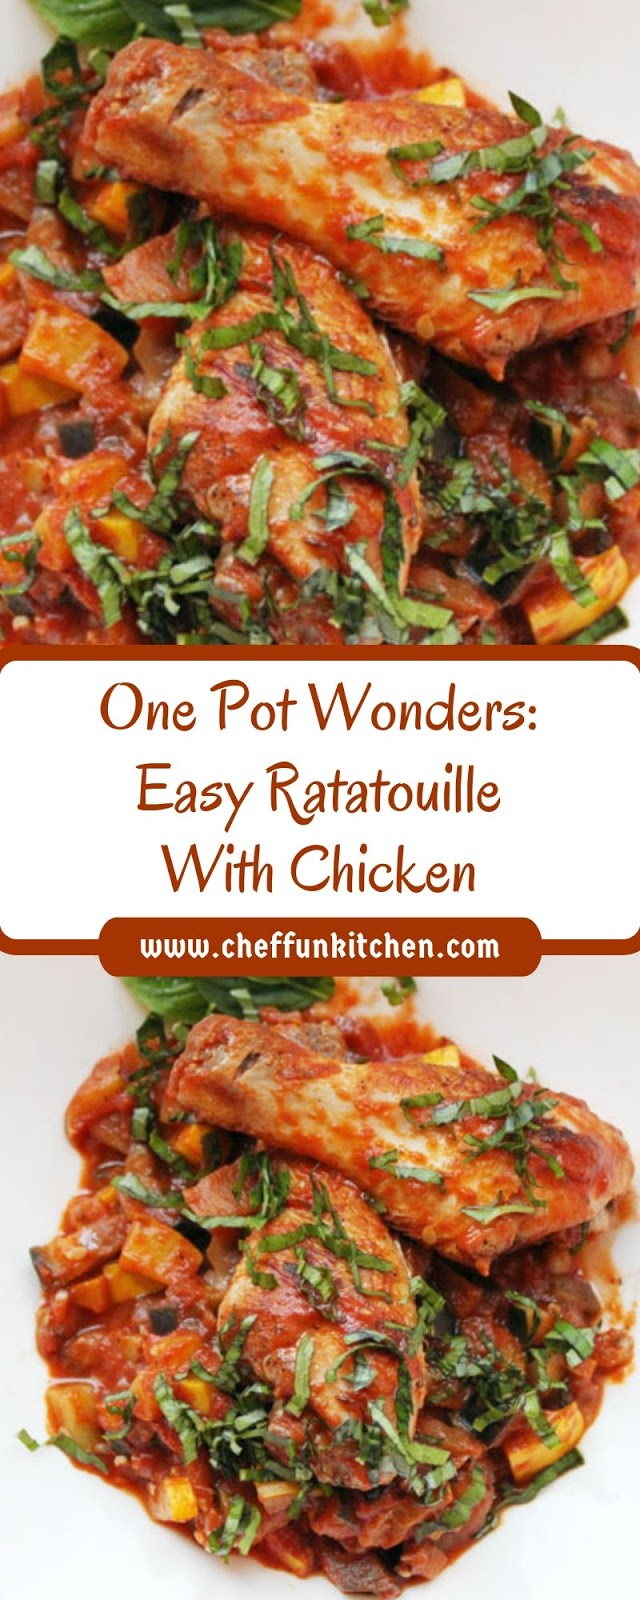 One Pot Wonders: Easy Ratatouille With Chicken